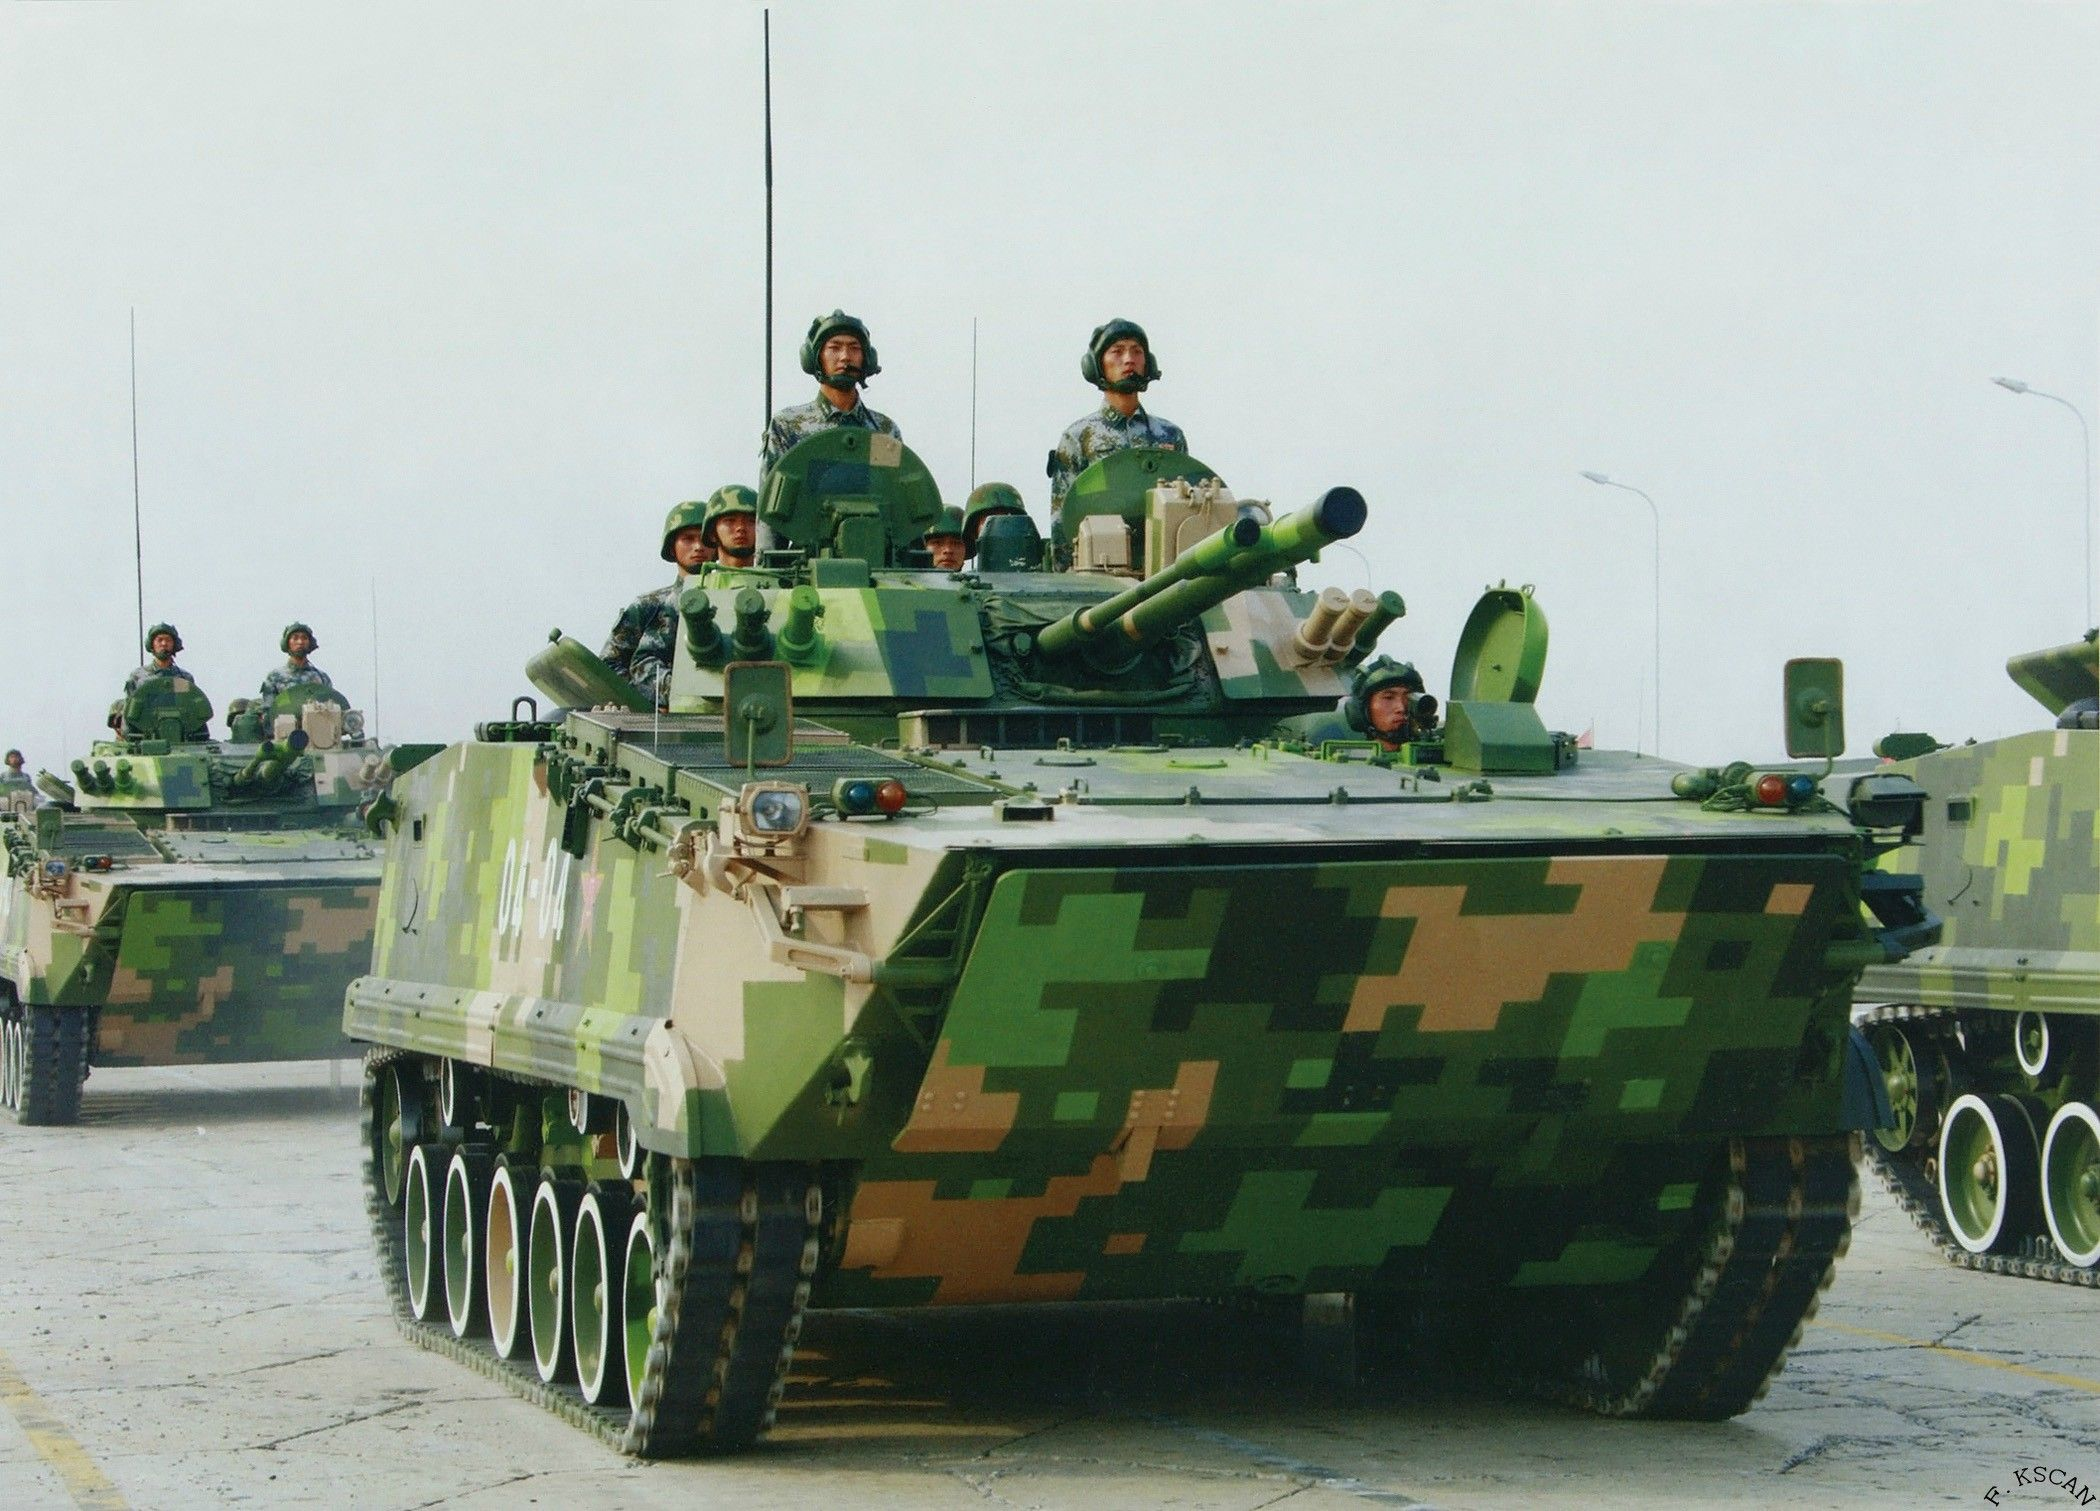 zbd 04 infantry fighting vehicle - HD 2100×1511